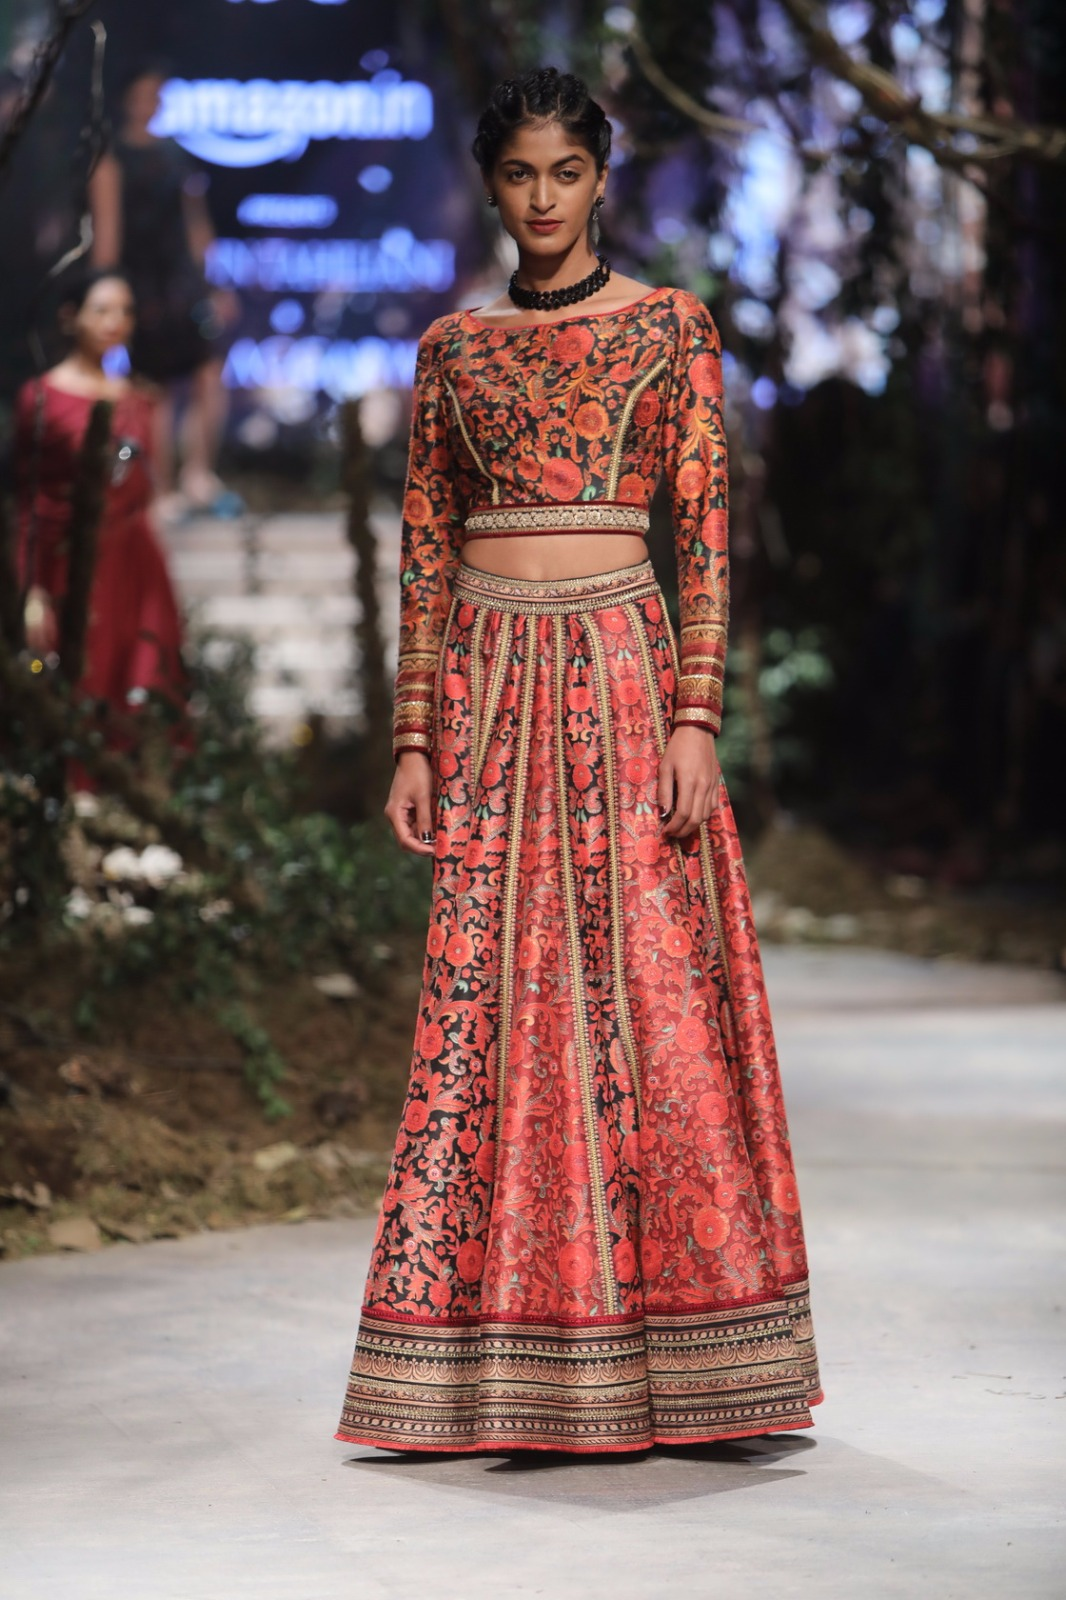 http://www.talksassy.com/wp-content/uploads/2017/03/Amazon-India-Fashion-Week-Autumn-Winter-2017-2.jpg